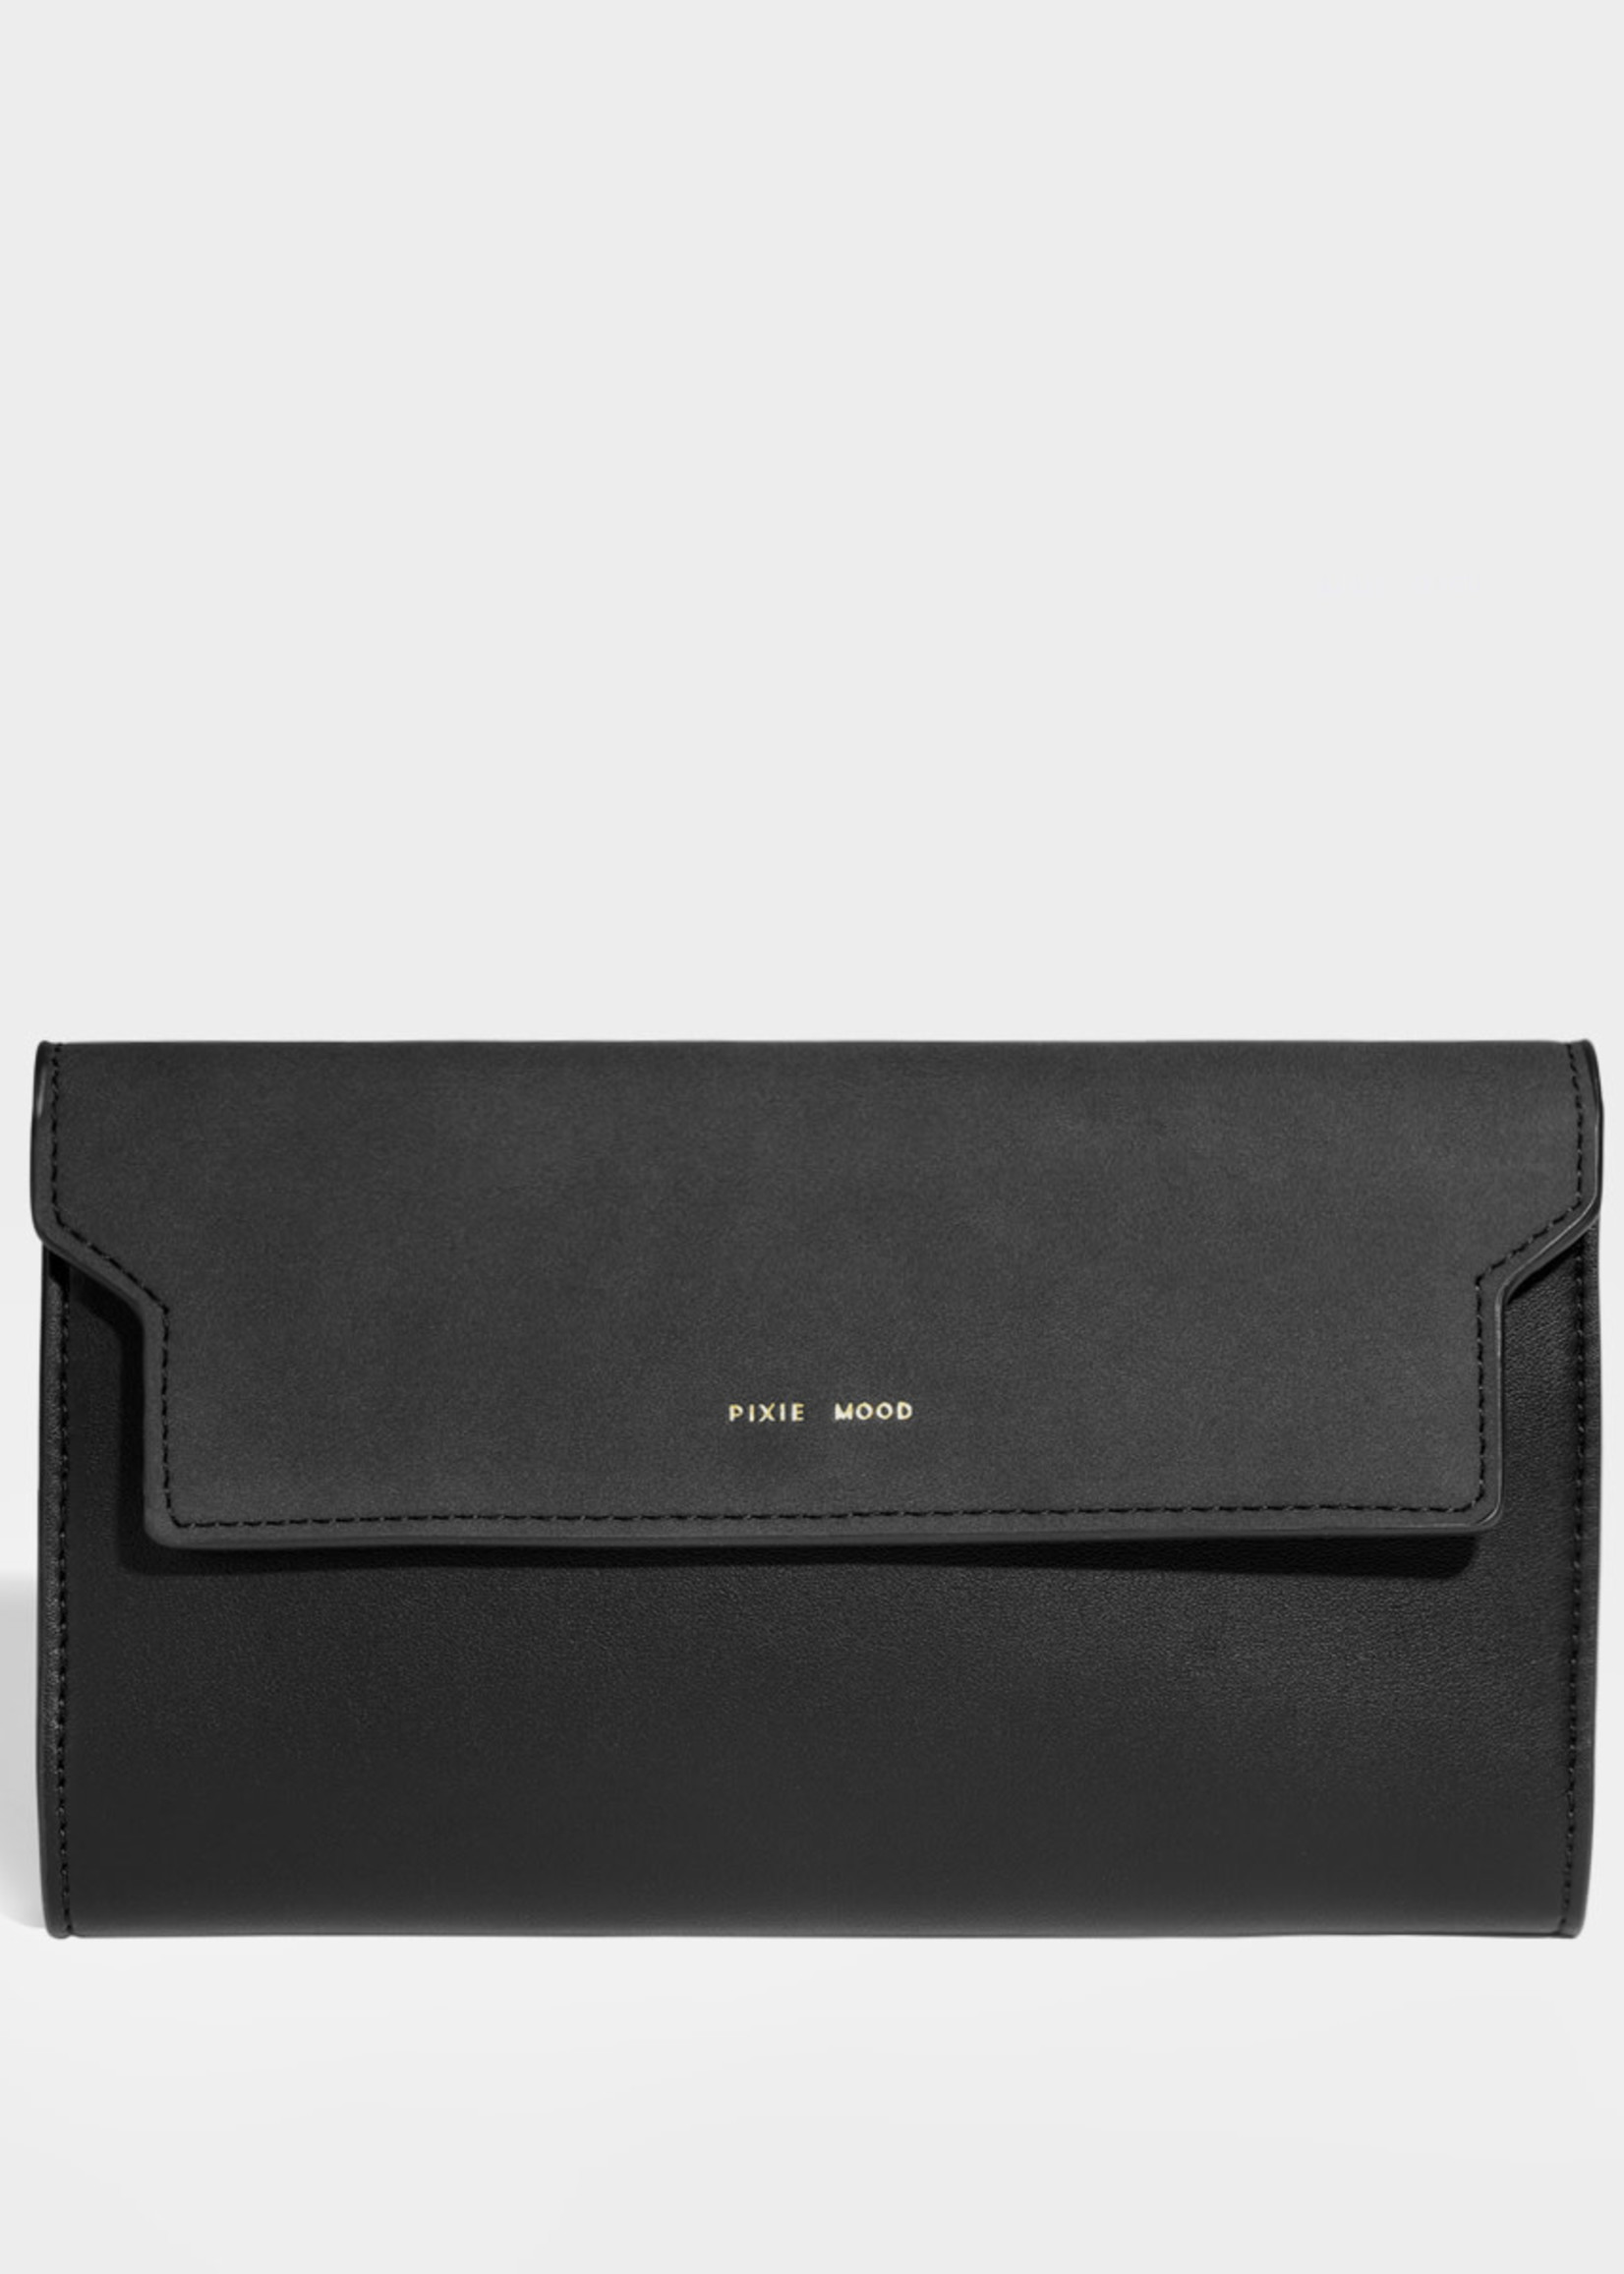 PIXIE MOOD Bianca Travel Organizer BLACK/NUBUCK